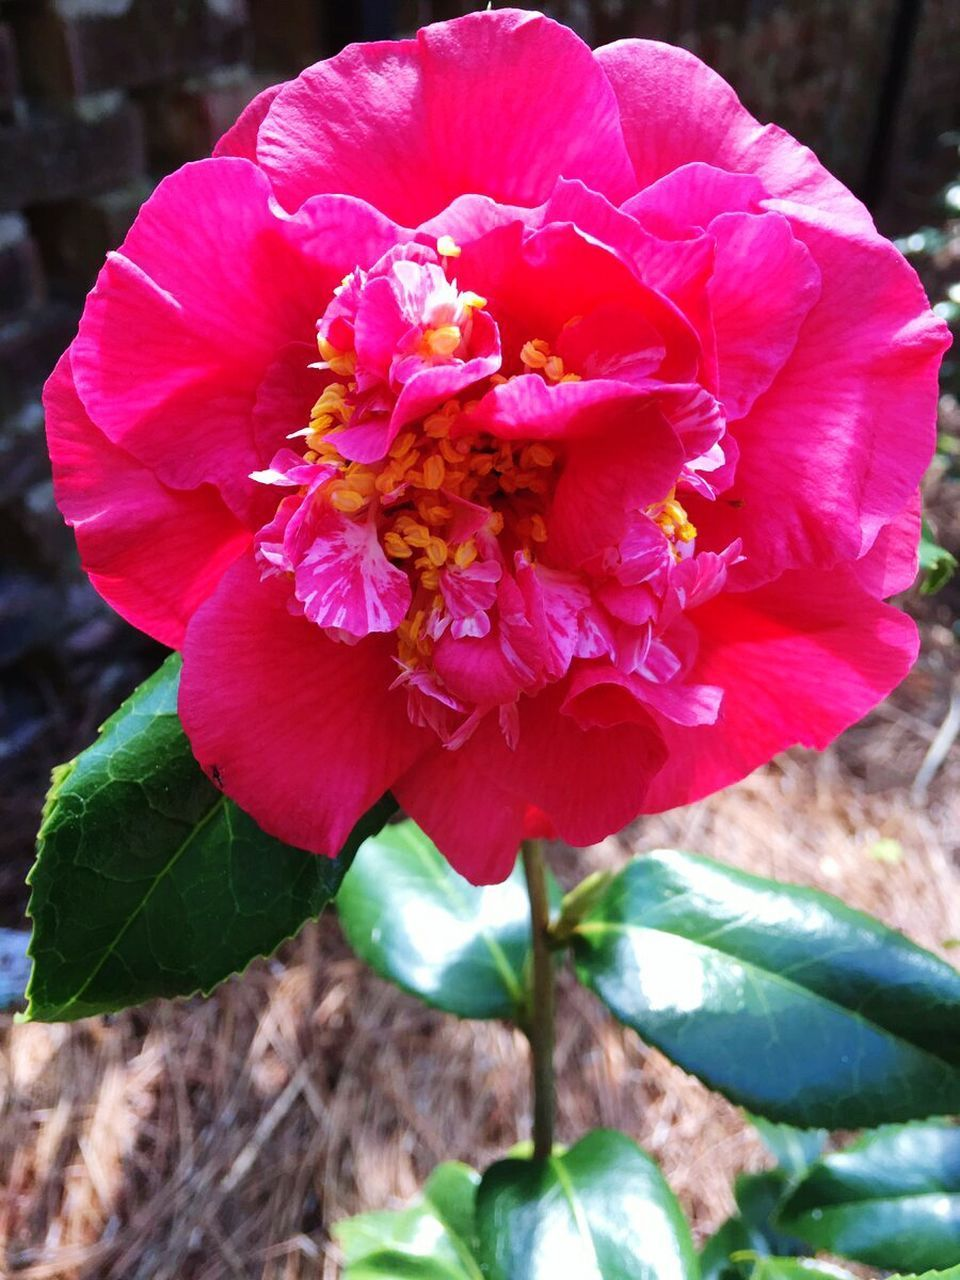 flower, petal, nature, beauty in nature, fragility, growth, flower head, plant, pink color, no people, freshness, outdoors, day, close-up, wild rose, blooming, leaf